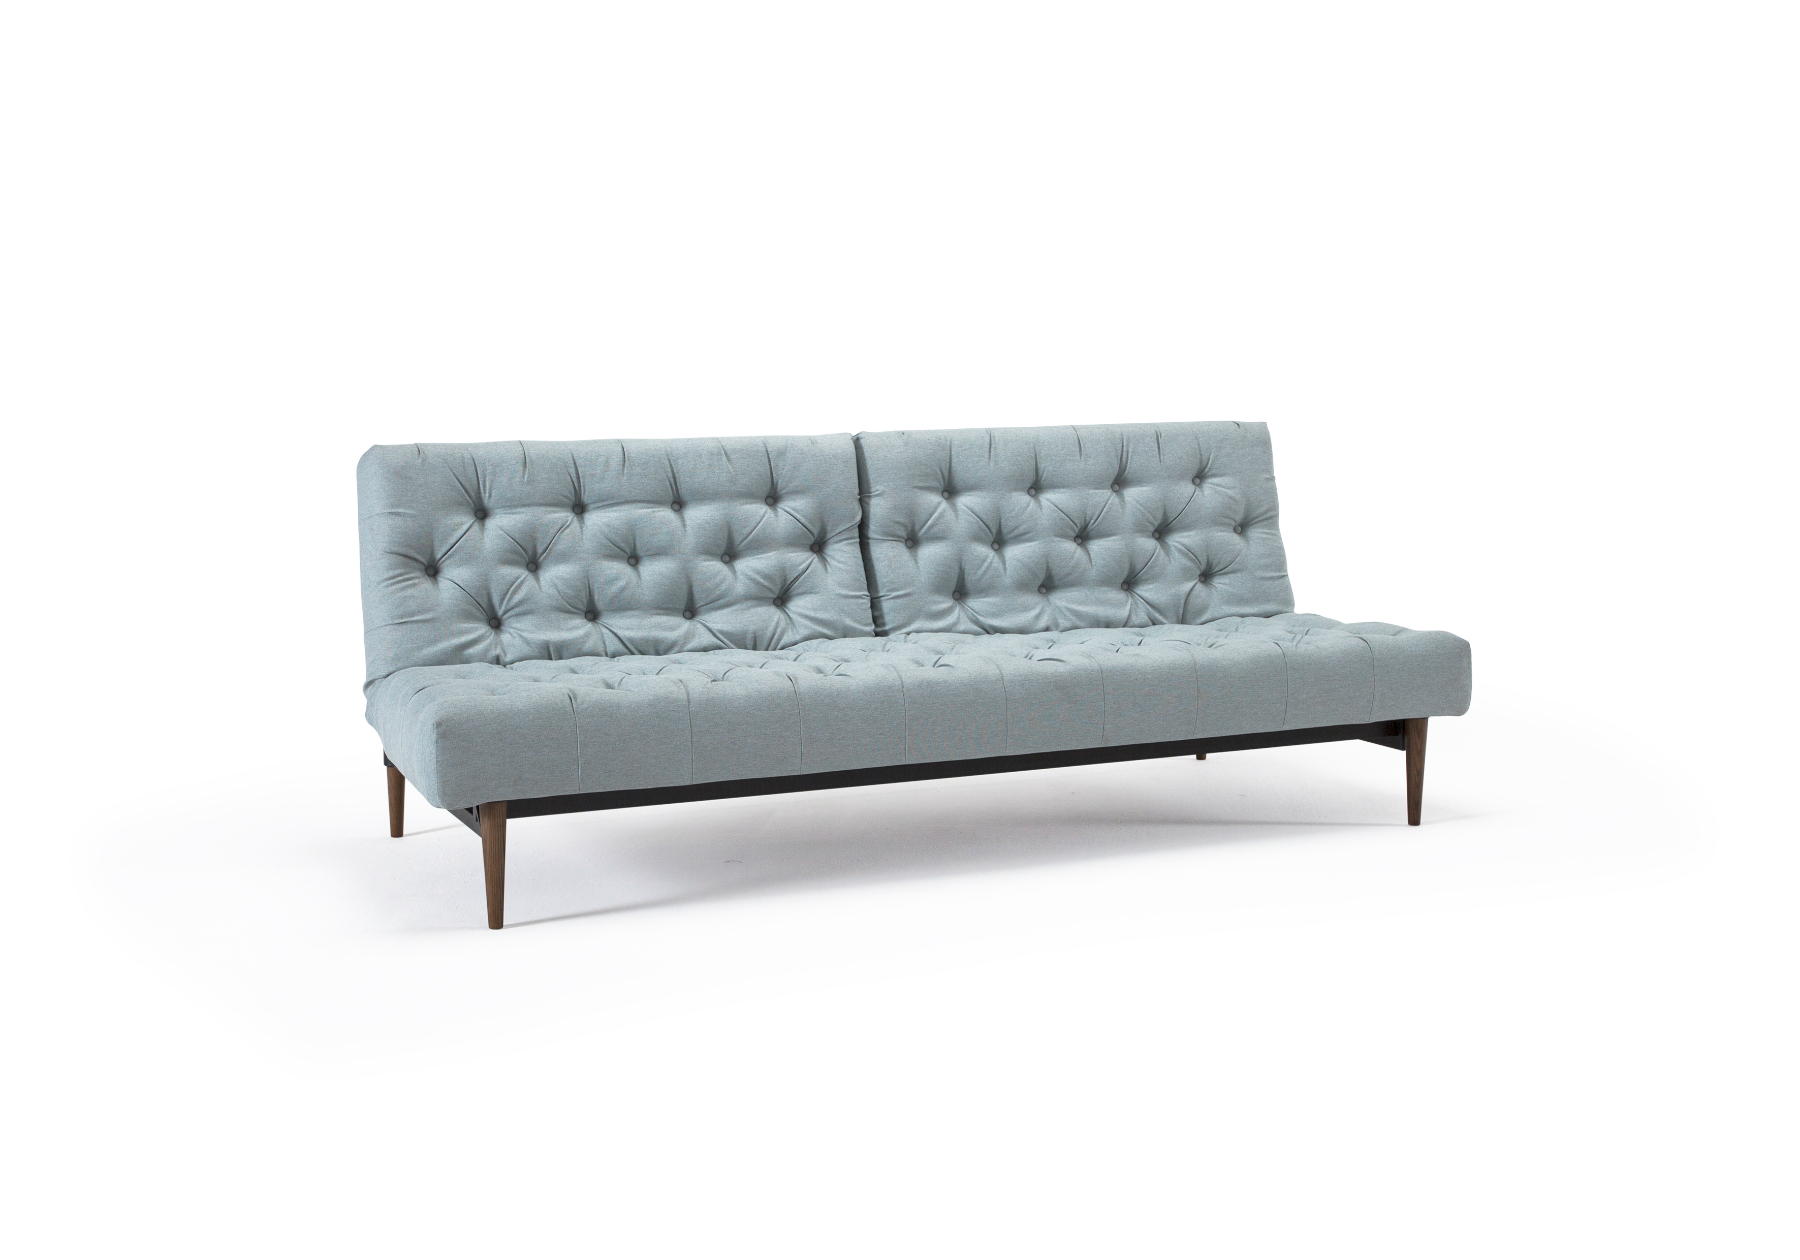 Oldschool sofa bed innovation living melbourne for Sofa bed australia